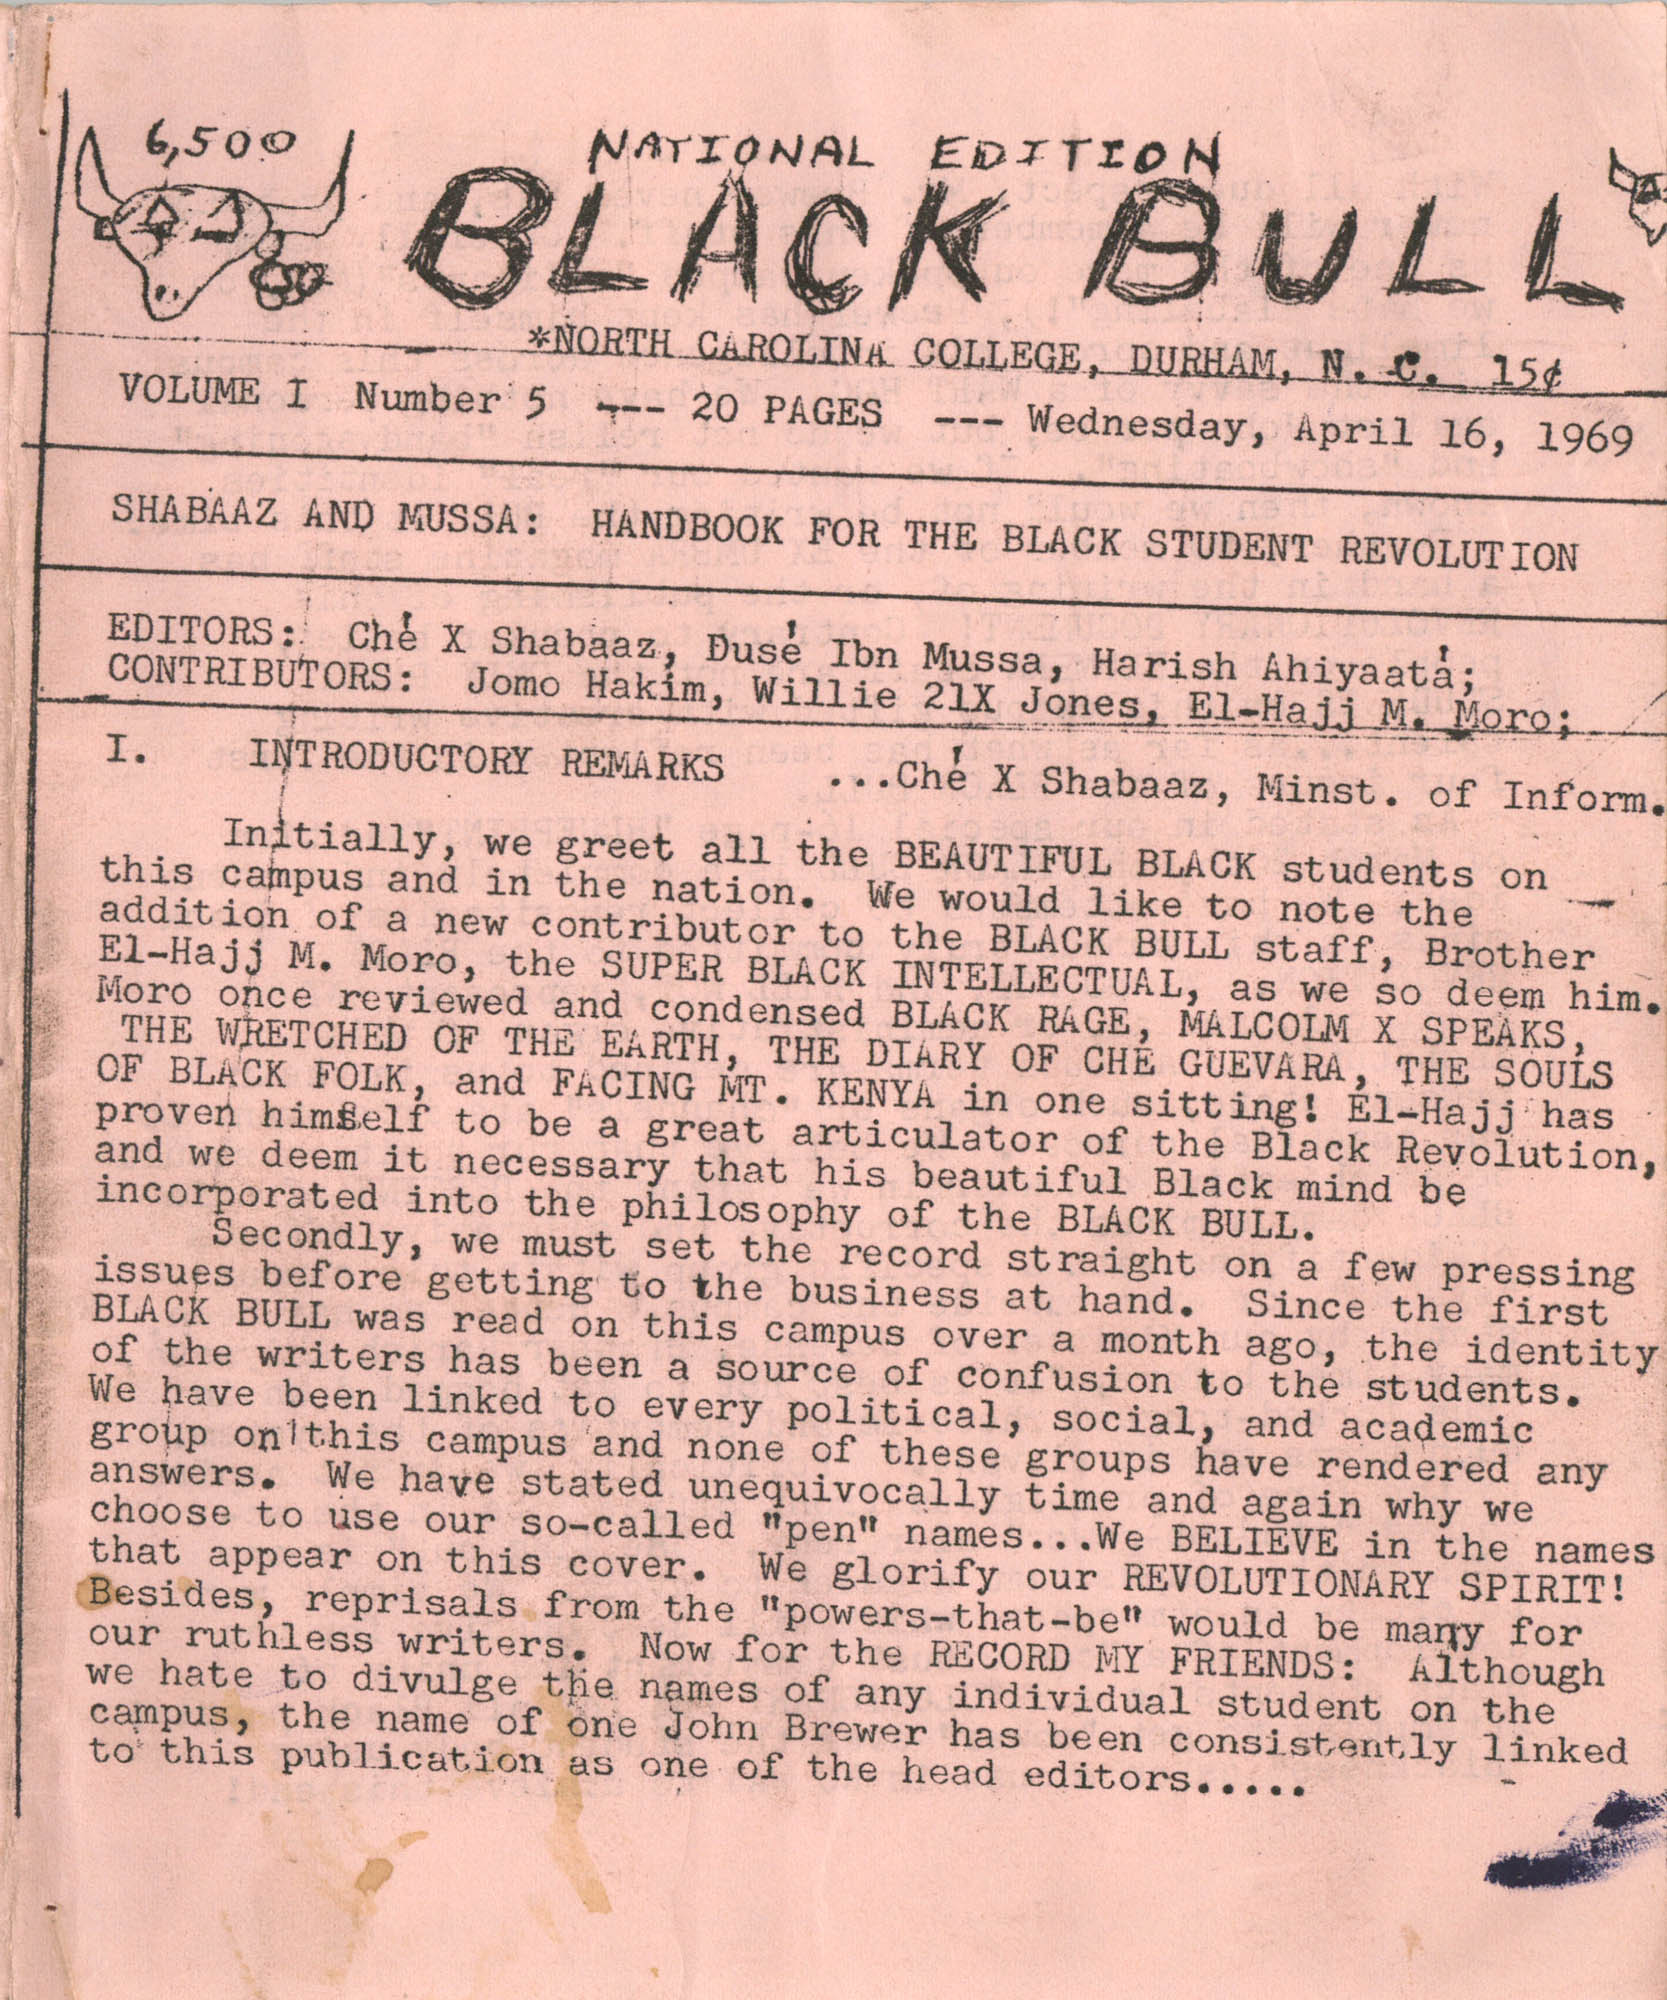 National Edition Black Bull, Volume I, Number 5, Page 1